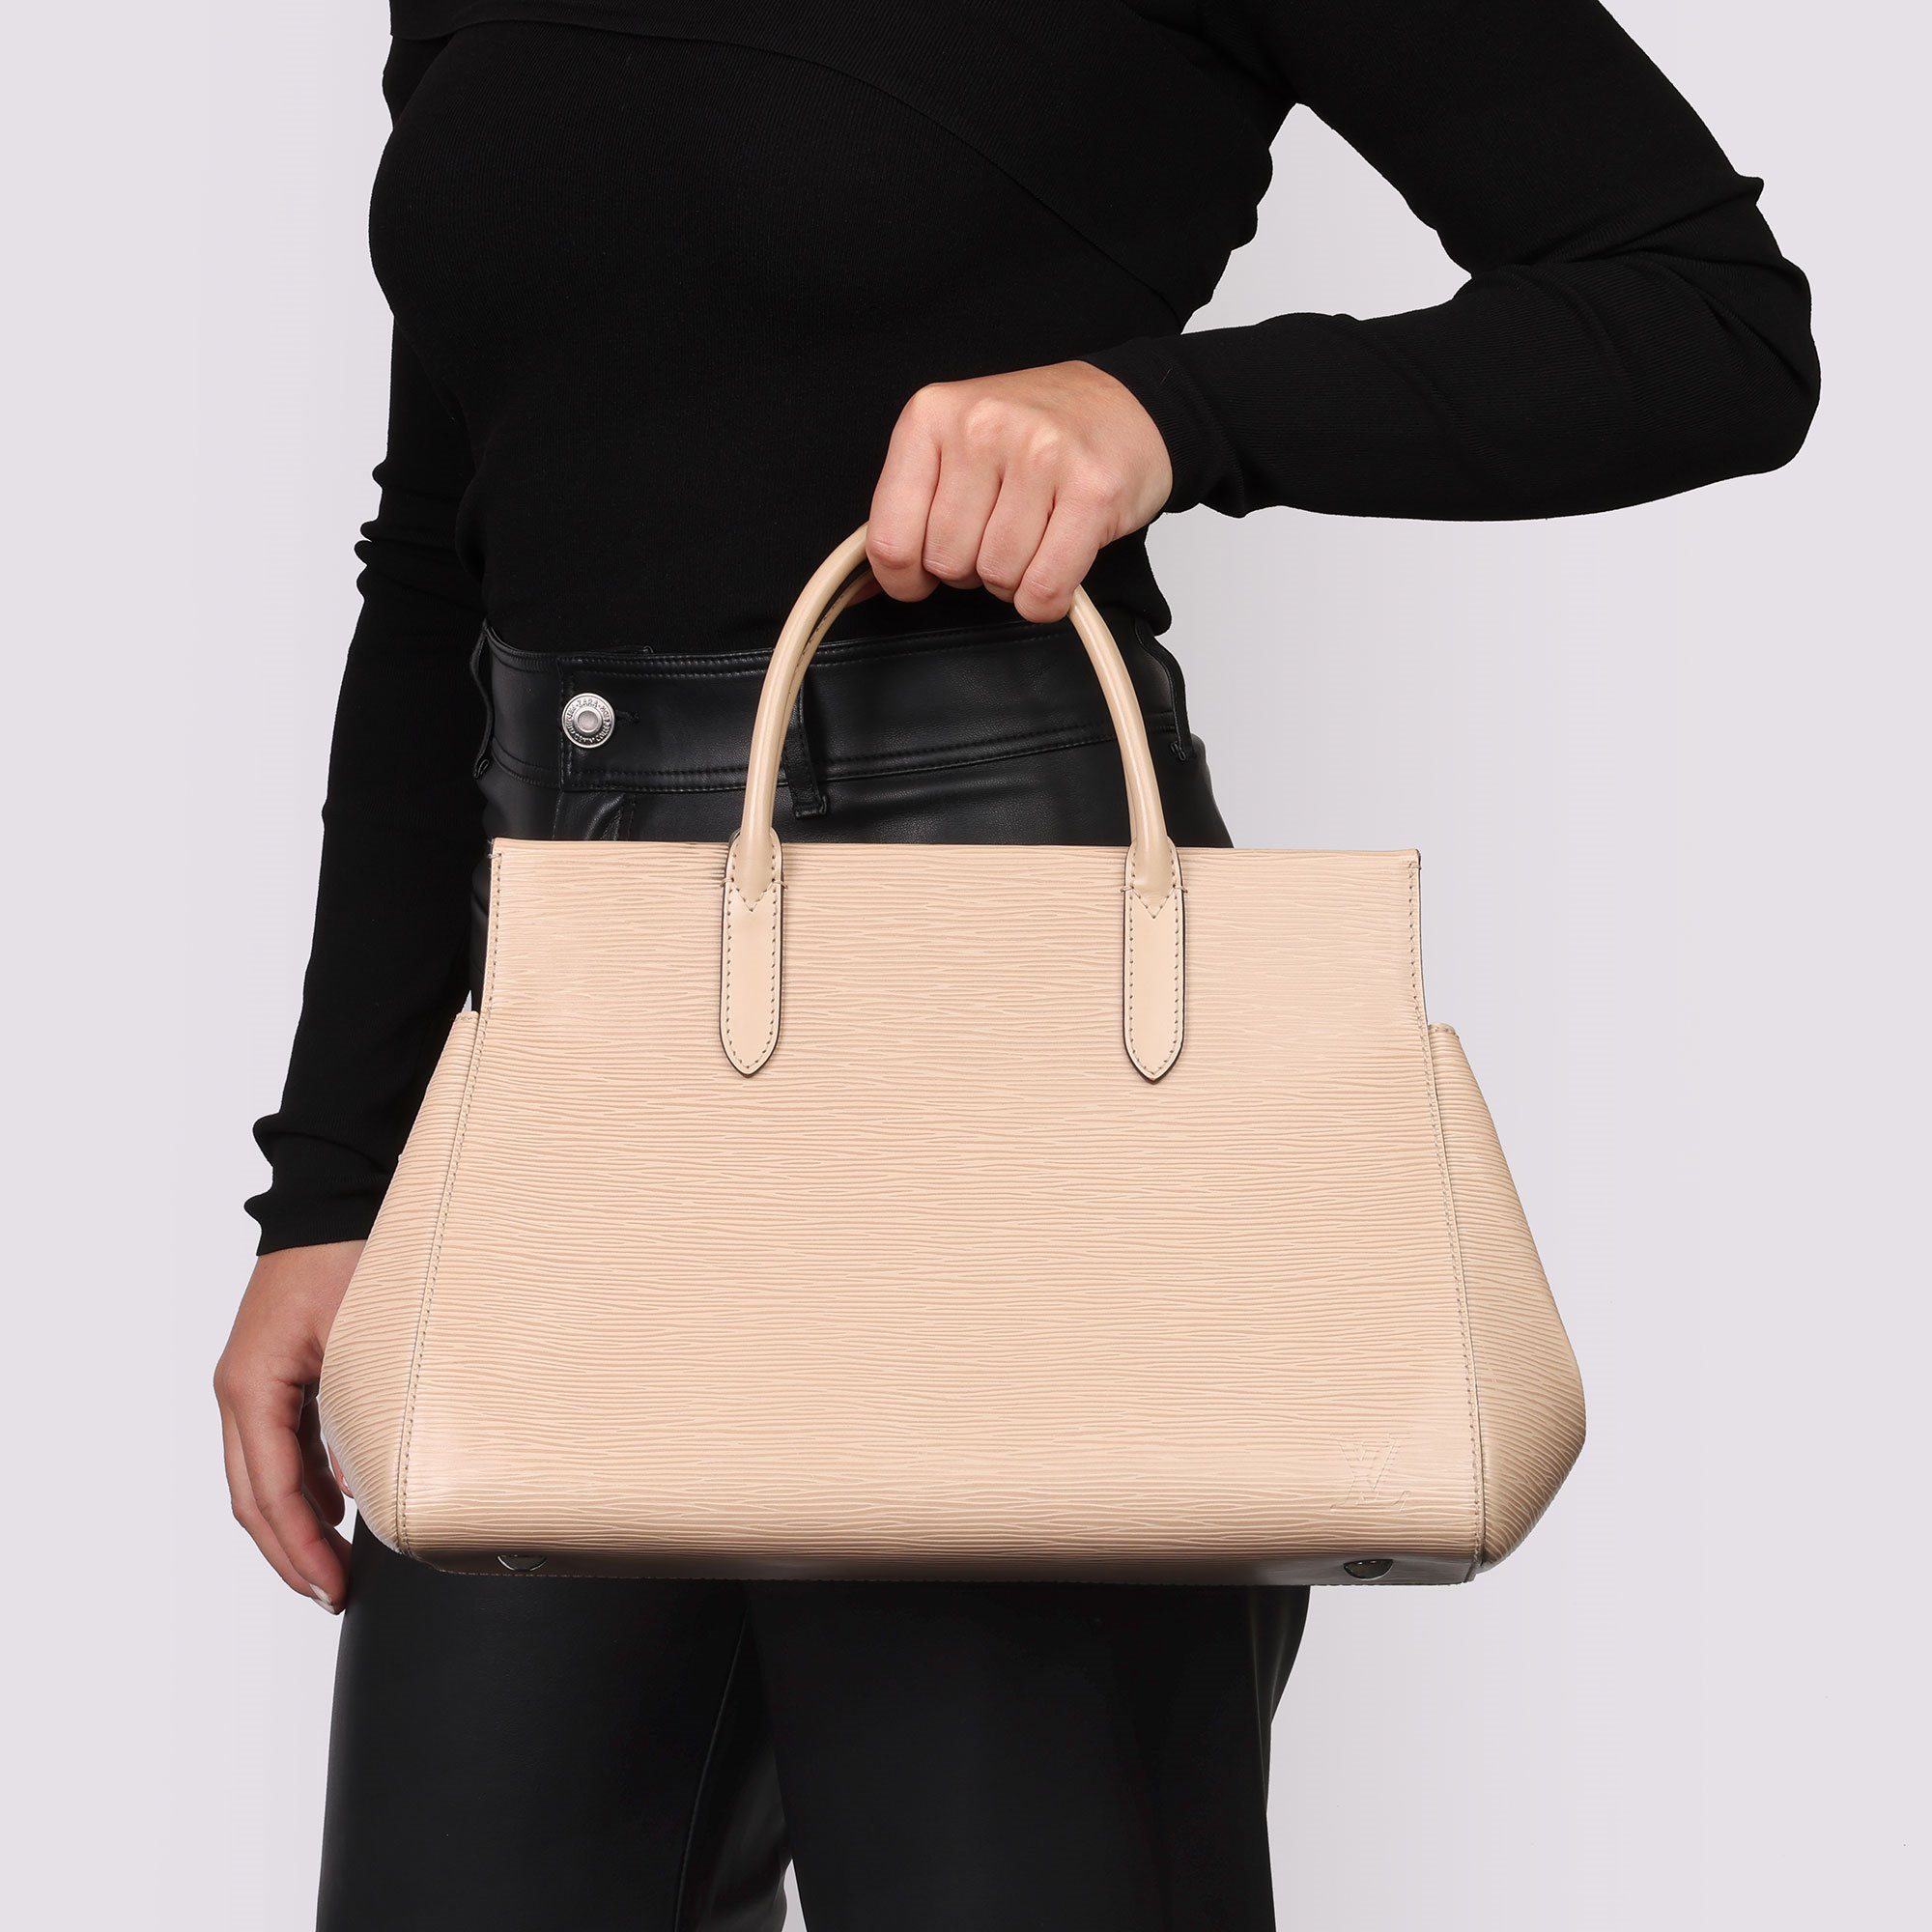 Louis Vuitton Dune Epi Leather Marly MM